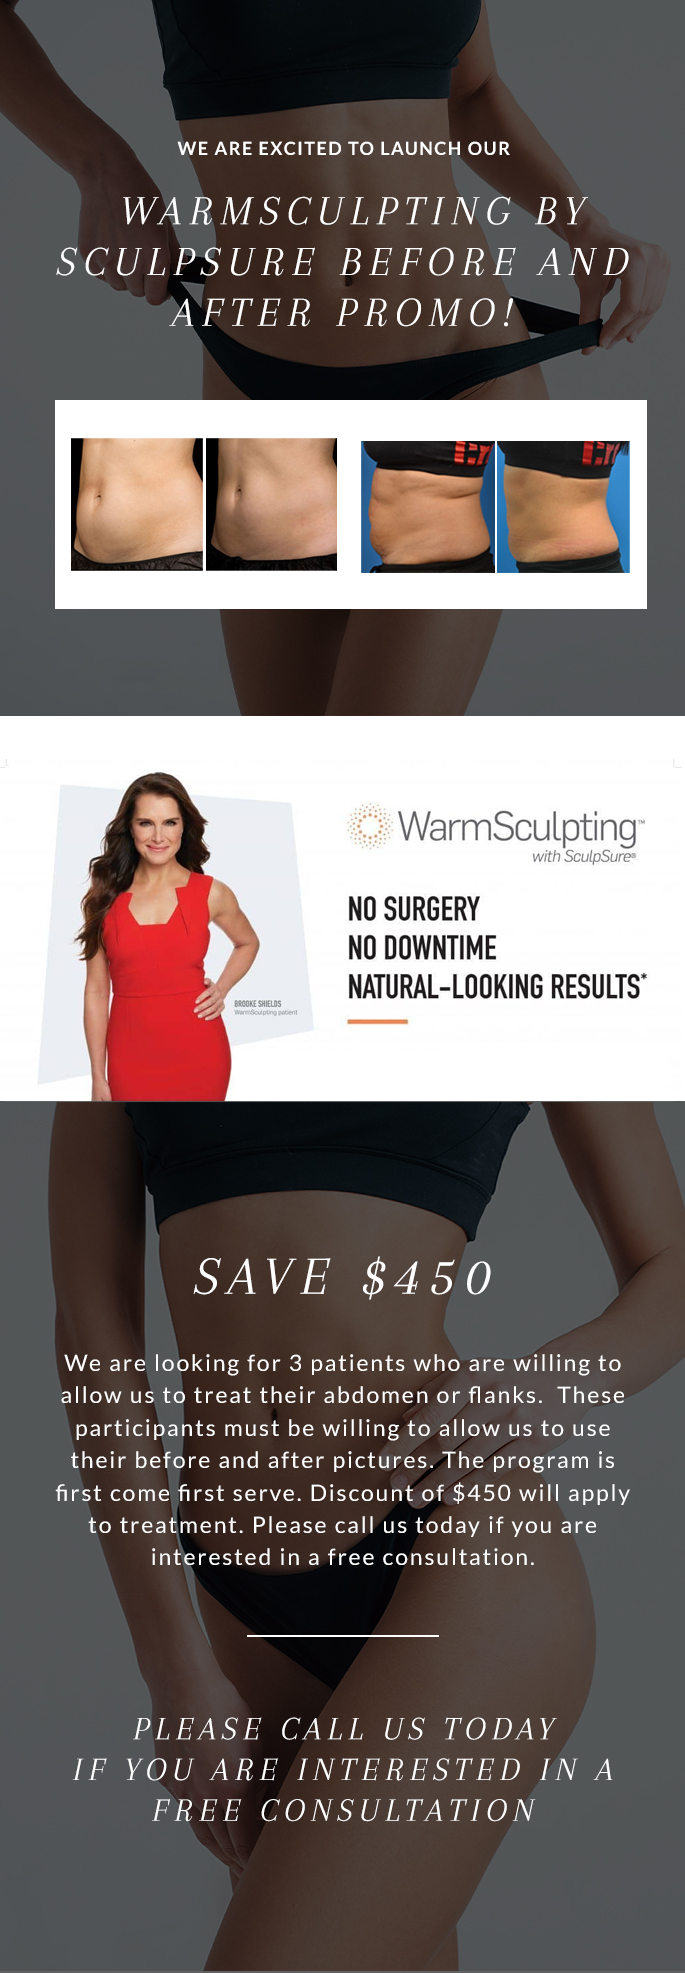 WarmSculpting by SculpSure Before and After Promo 2019